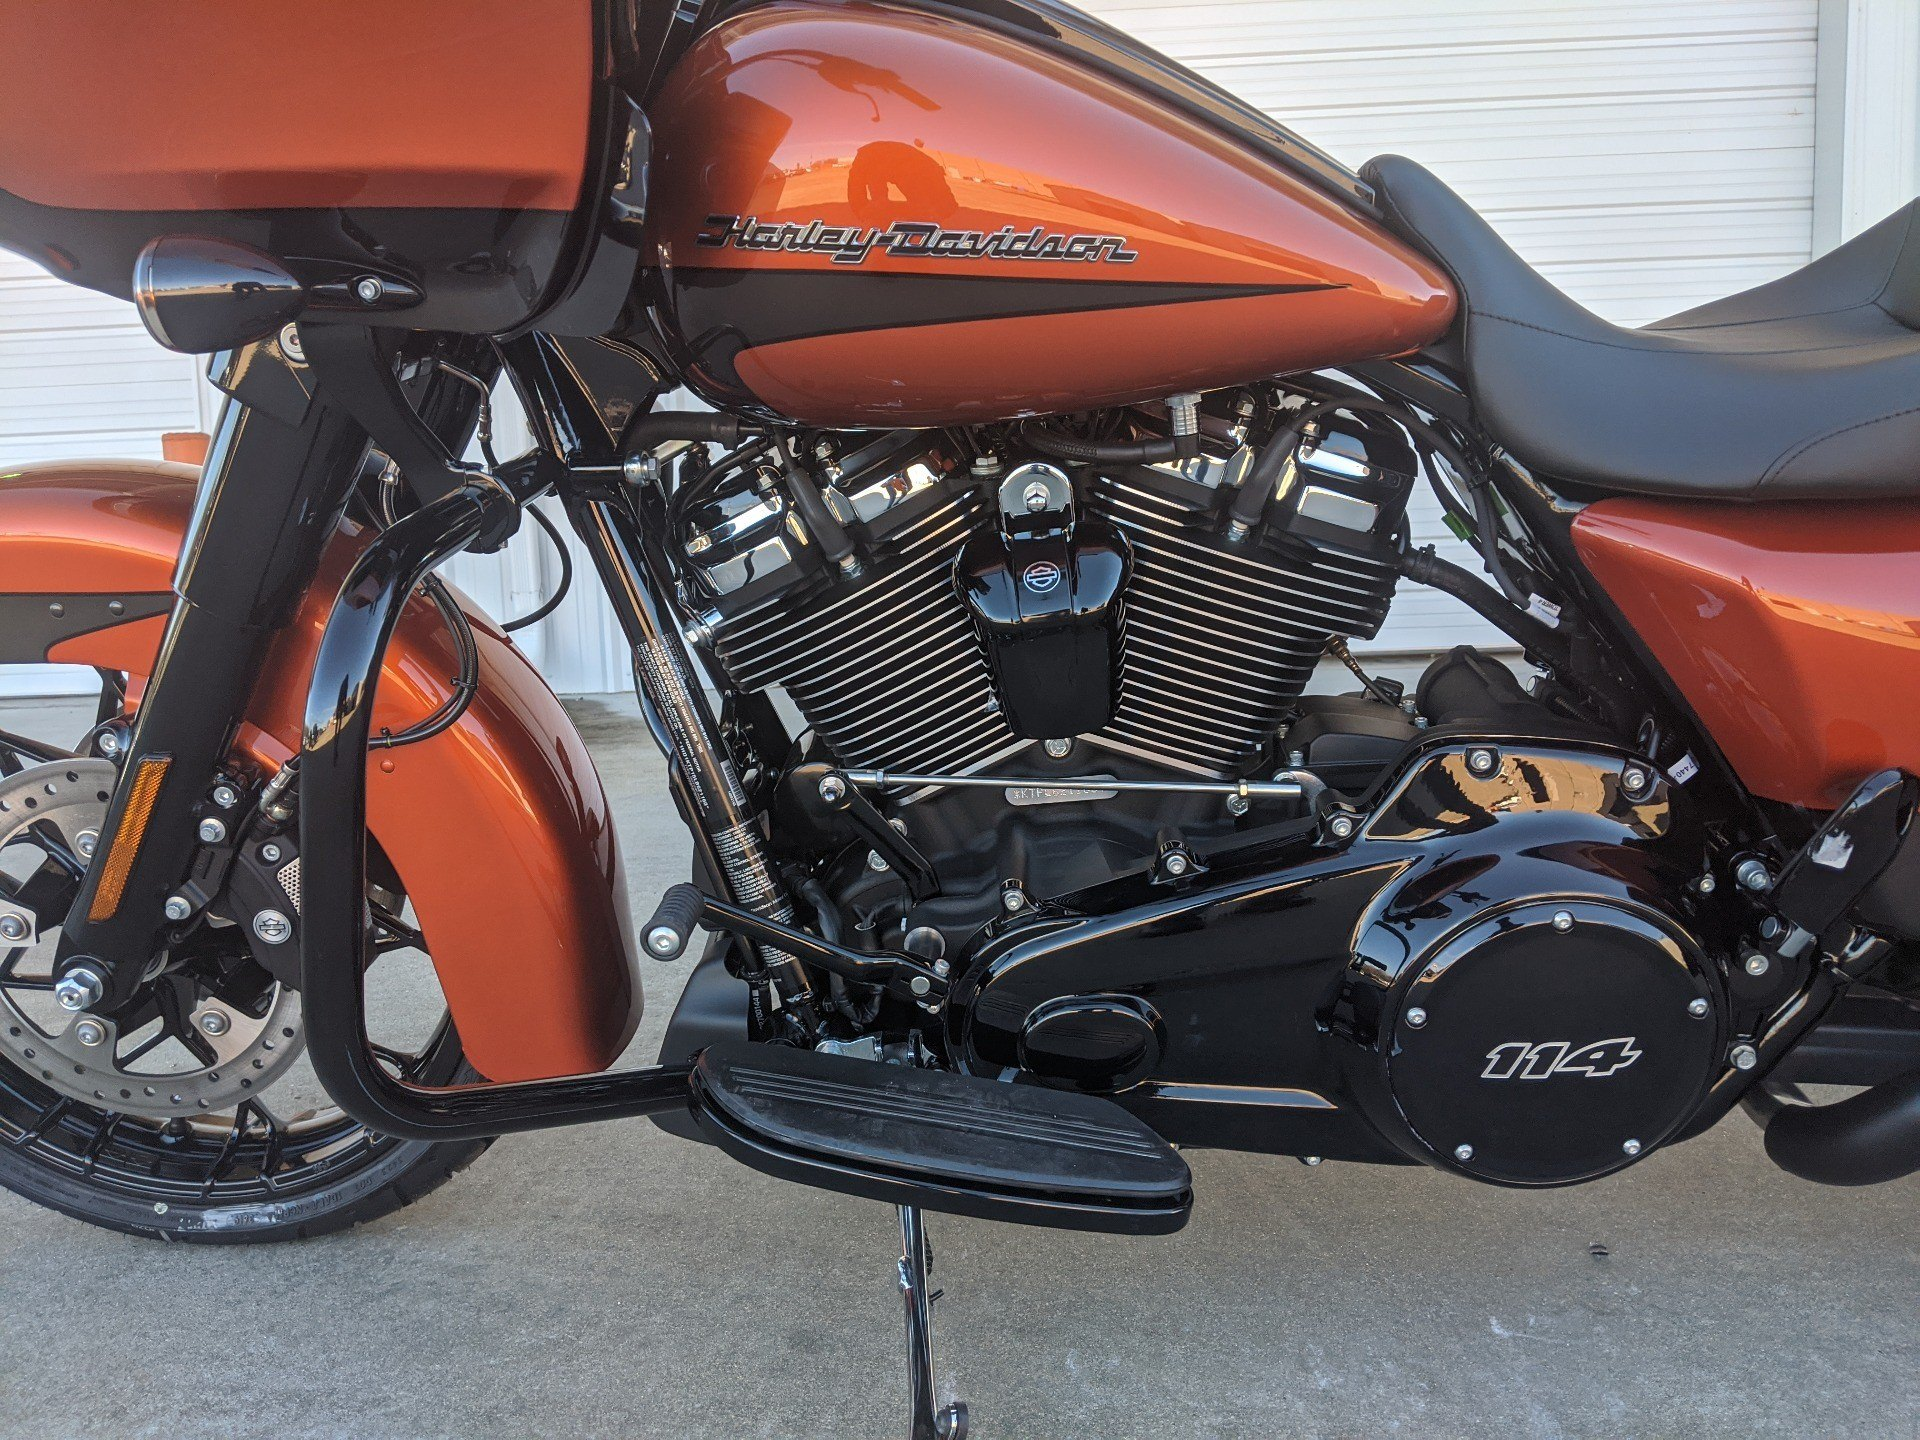 2020 road glide special for sale near me - Photo 7